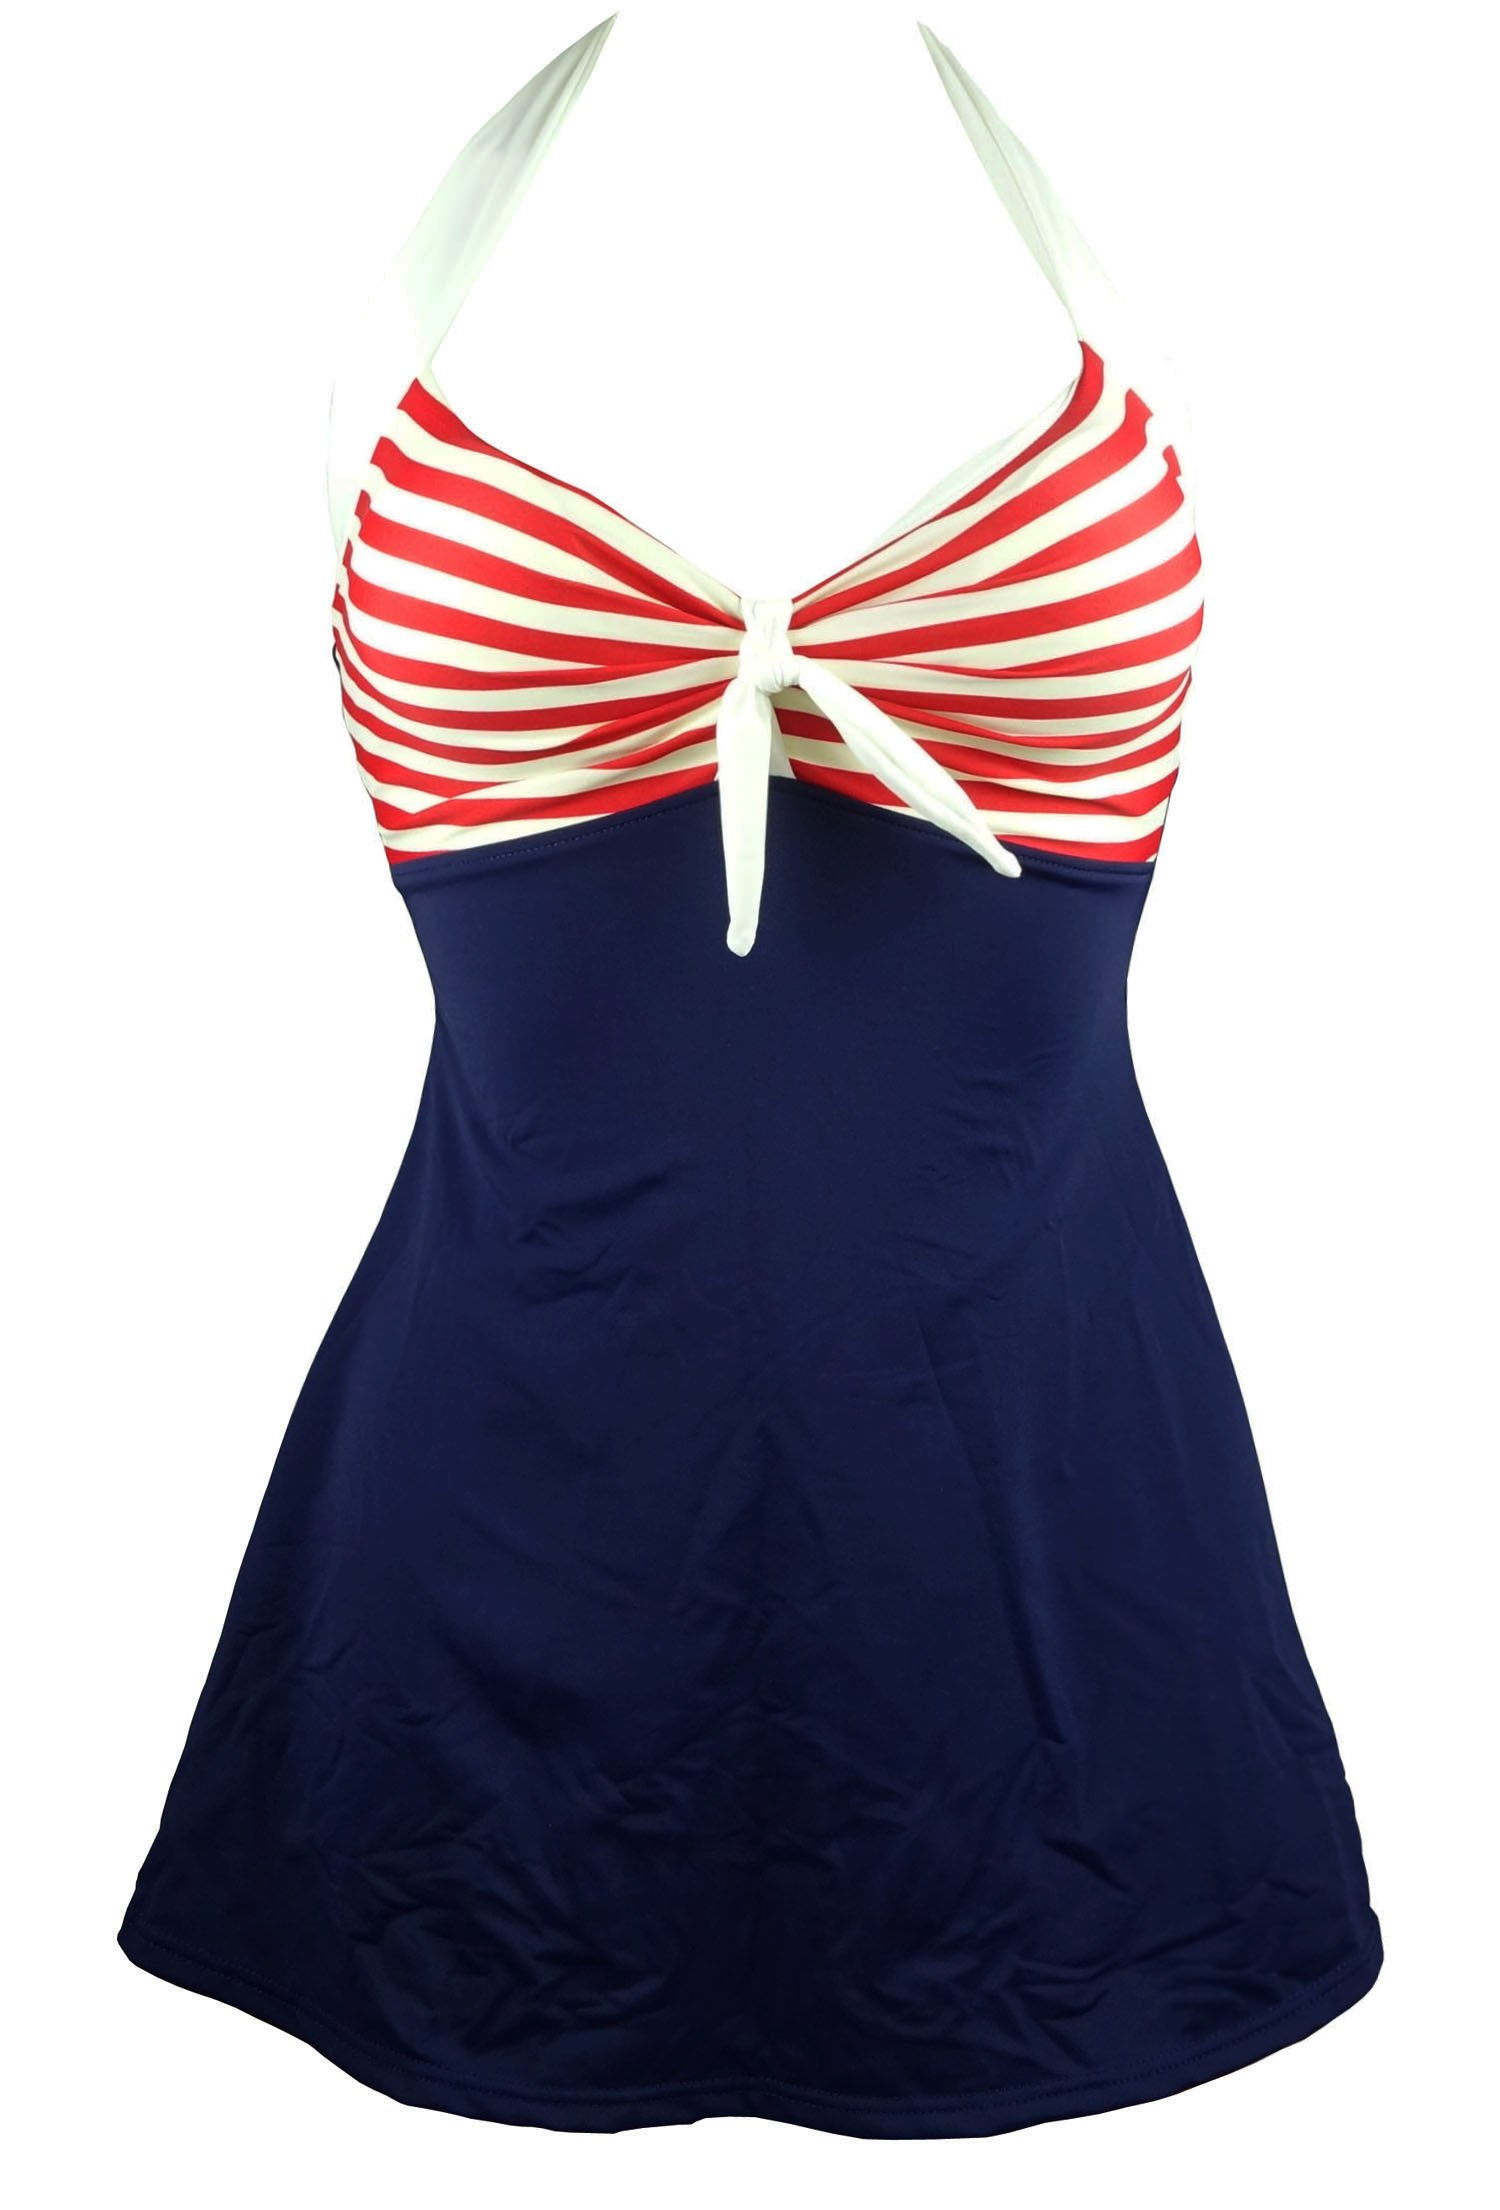 Cocoship Navy Blue & Red White Striped Vintage Sailor Pin Up Swimsuit One Piece Skirtini Cover Up Swimdress XXXL(FBA)